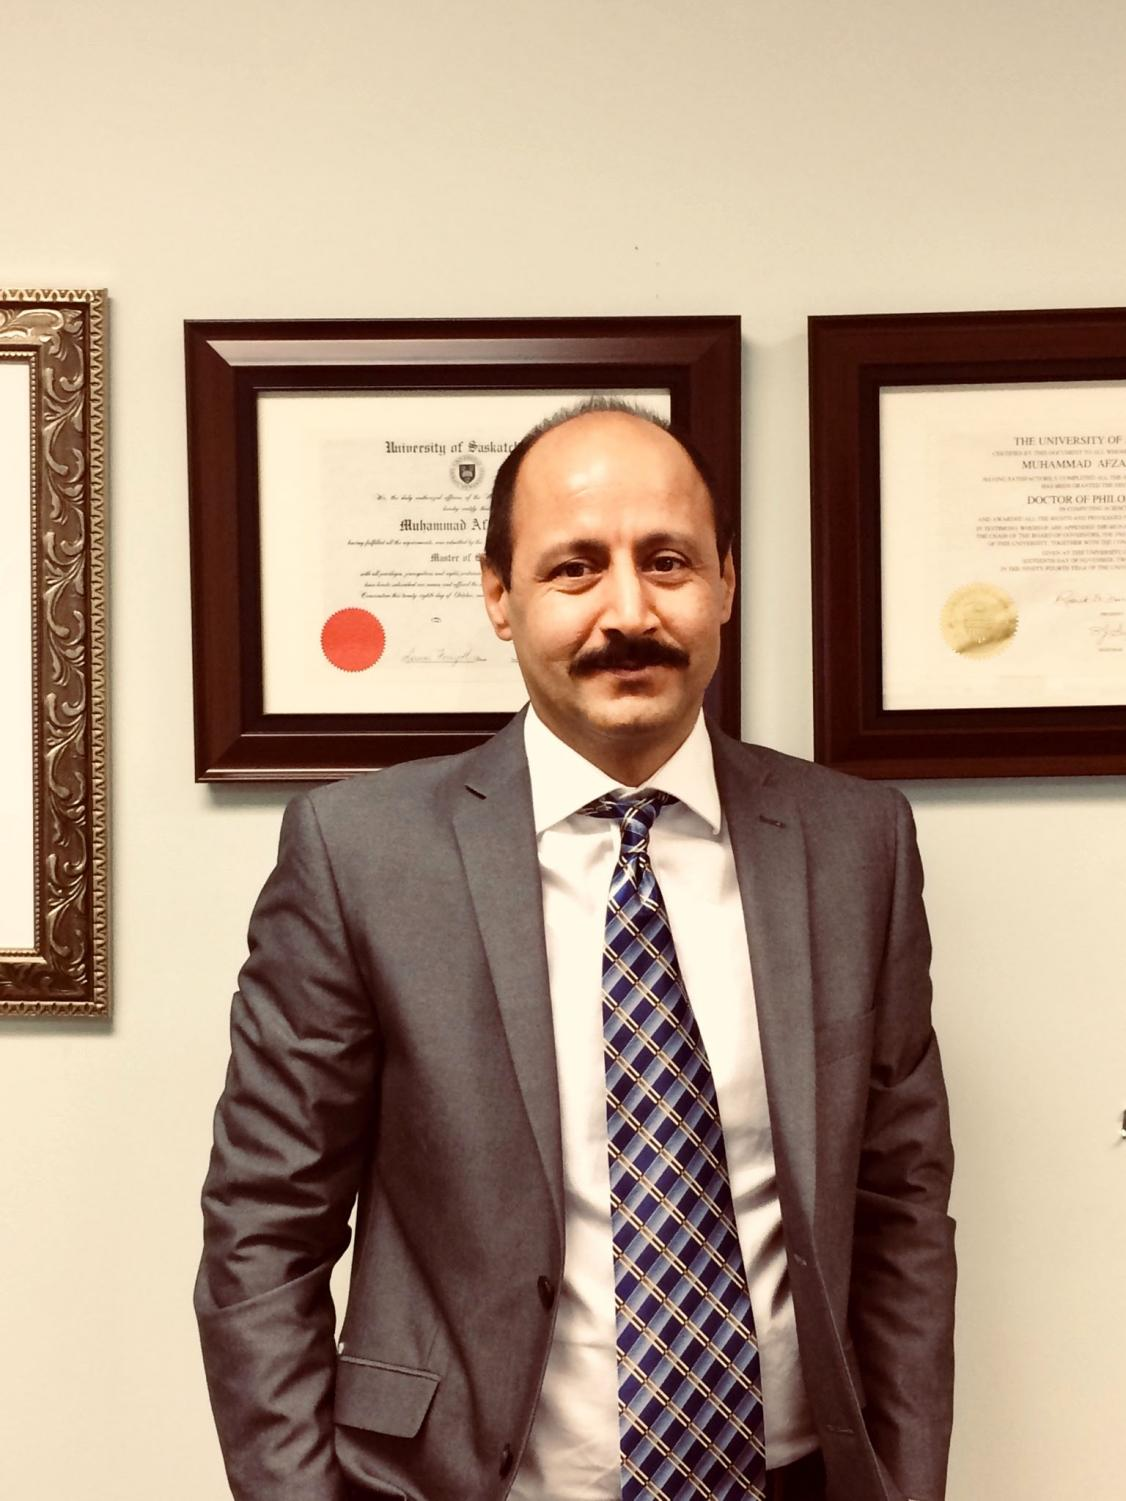 Afzal Upal, Ph.D., who is a native of Pakistan, is the new Data Science program director.